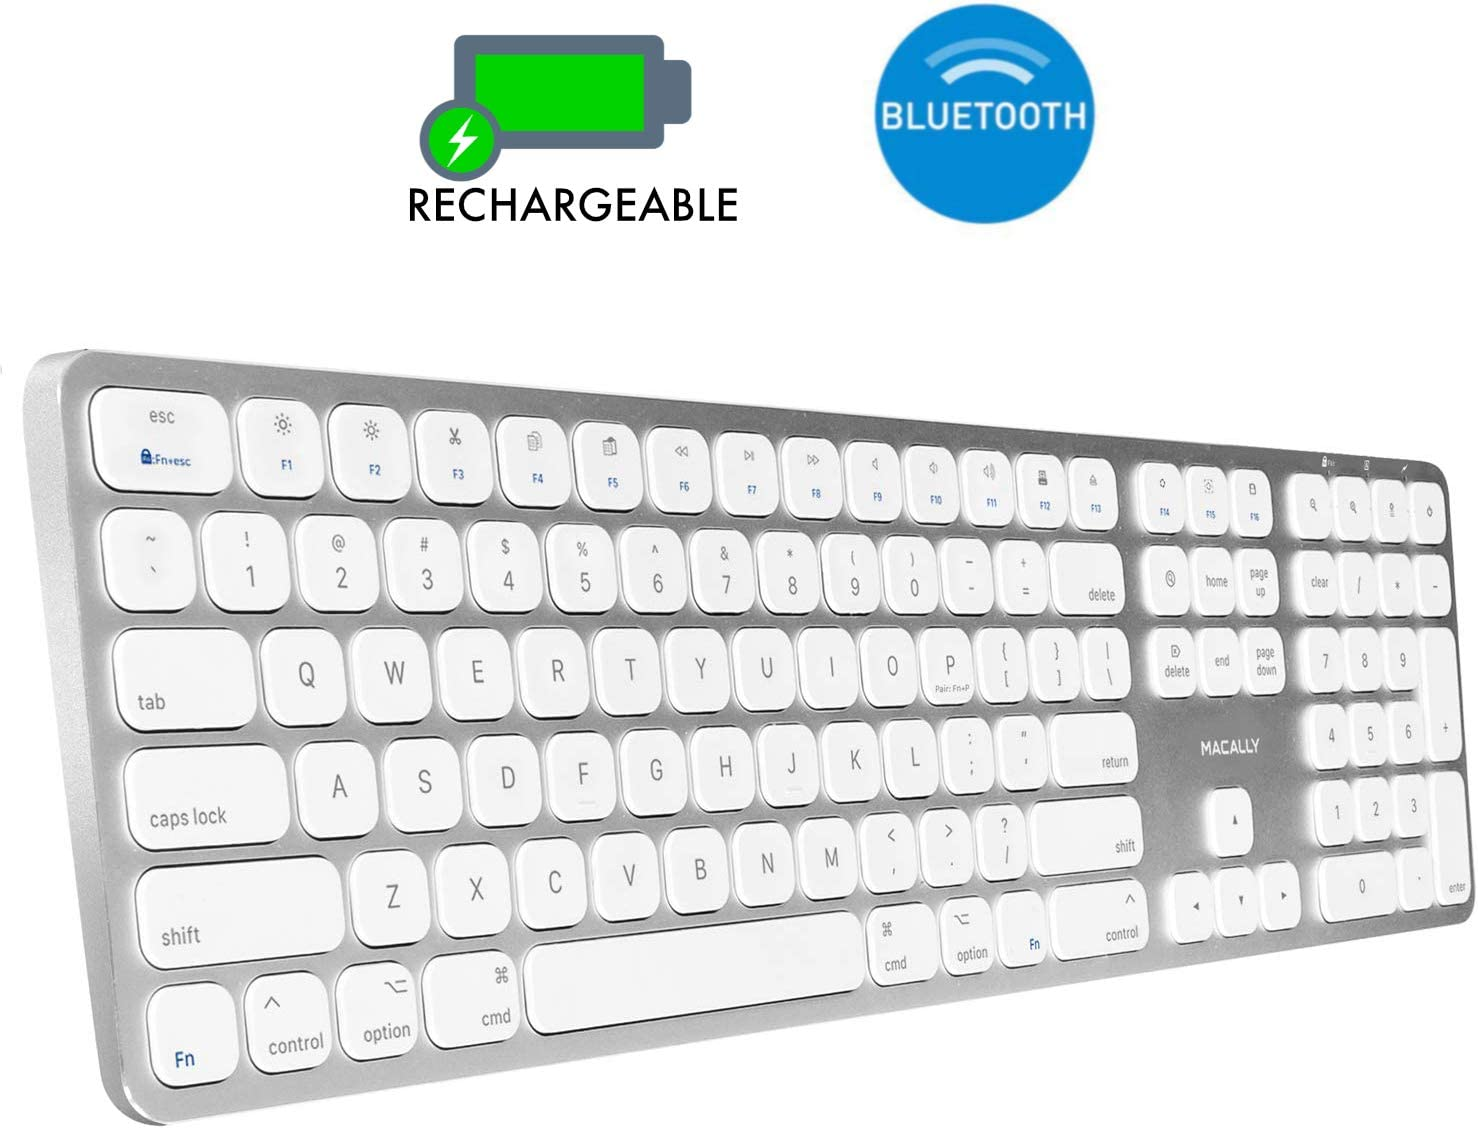 Macally Bluetooth Wireless Keyboard for Mac - Compatible with All Apple Computers & Laptops, iMac Mini/Pro, MacBook Pro/Air, iPad, iPhone - Slim Full Size Metal Frame Mac Wireless Keyboard - Silver